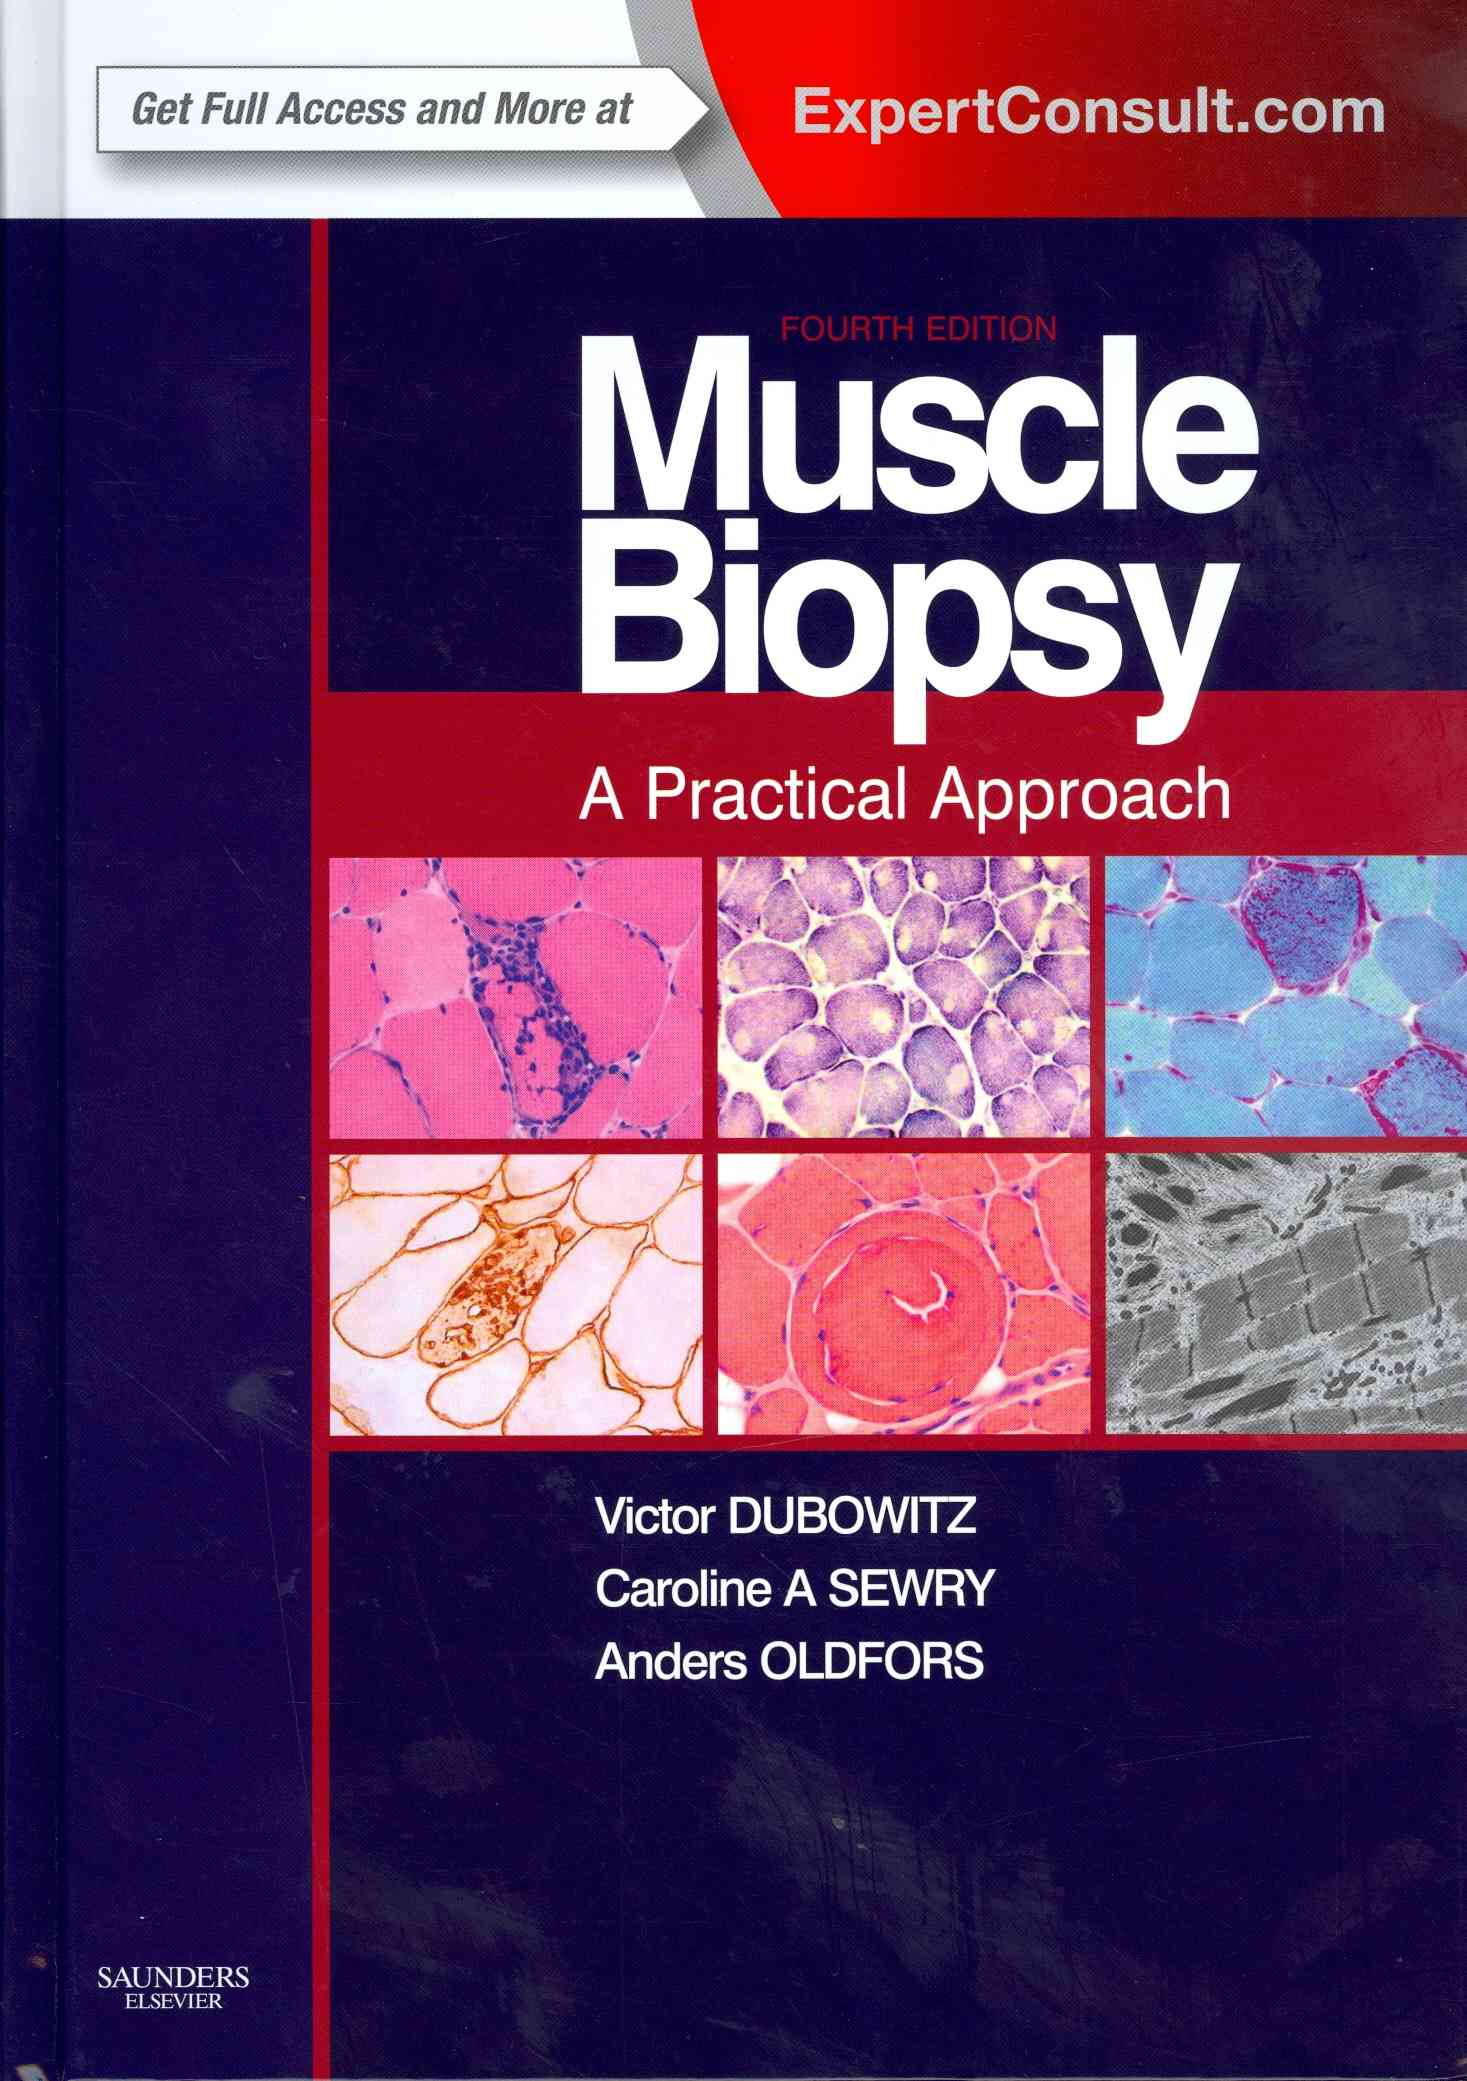 Muscle Biopsy By Dubowitz, Victor/ Sewry, Caroline A./ Oldfors, Anders